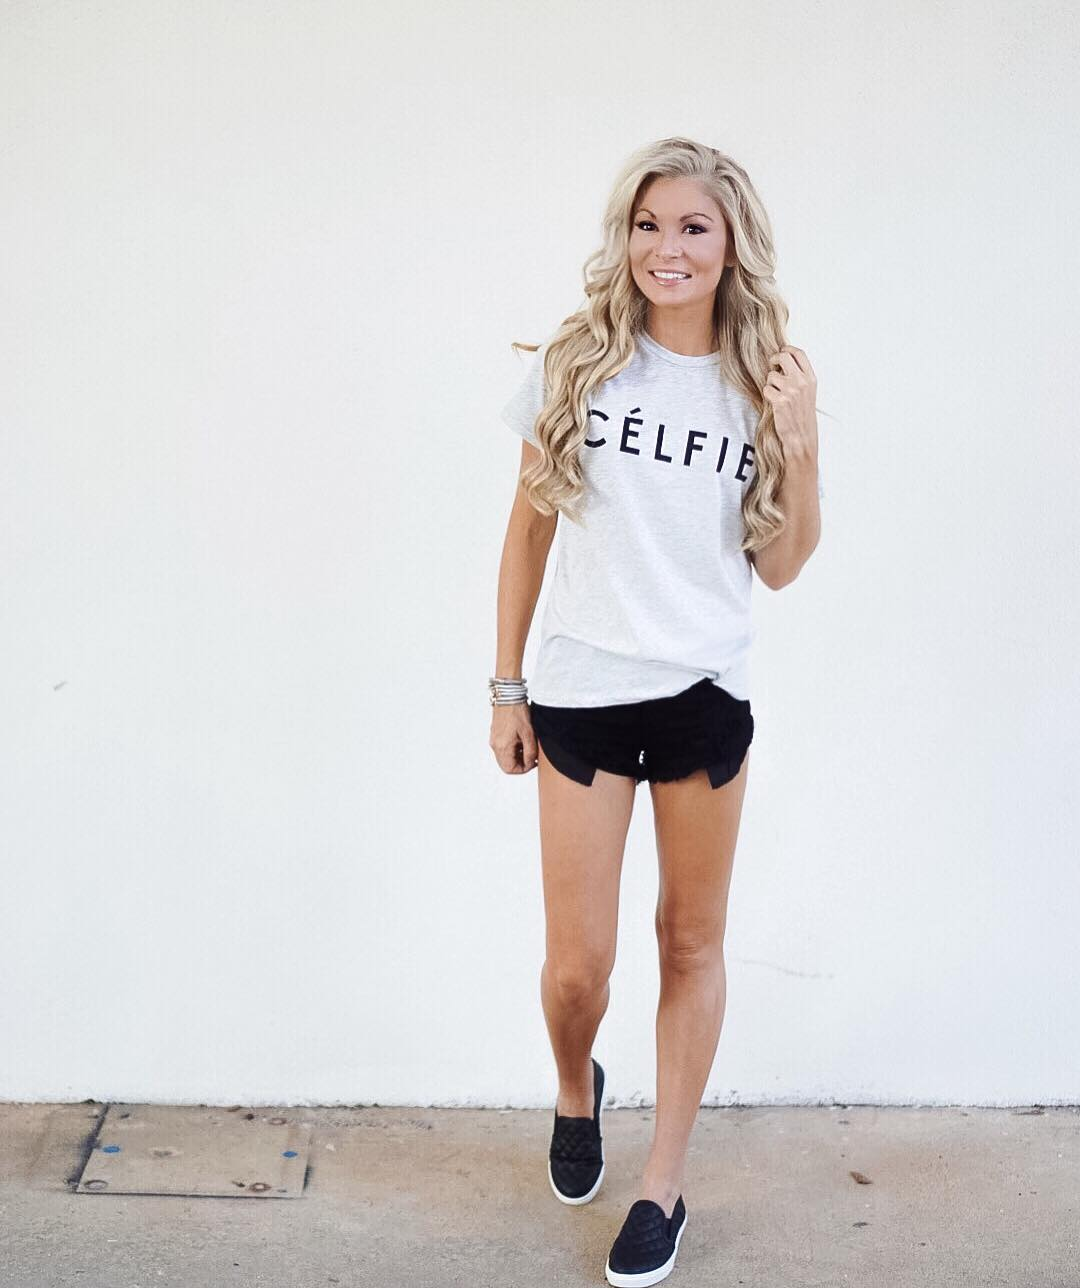 What's better than a graphic tee & cutoffs in the summertime!?! {especially one this cute! #selfie} ⚫️⚪️ http://liketk.it/2p4Nz #summertime #ootd #wiw #momstyle #isitfridayyet